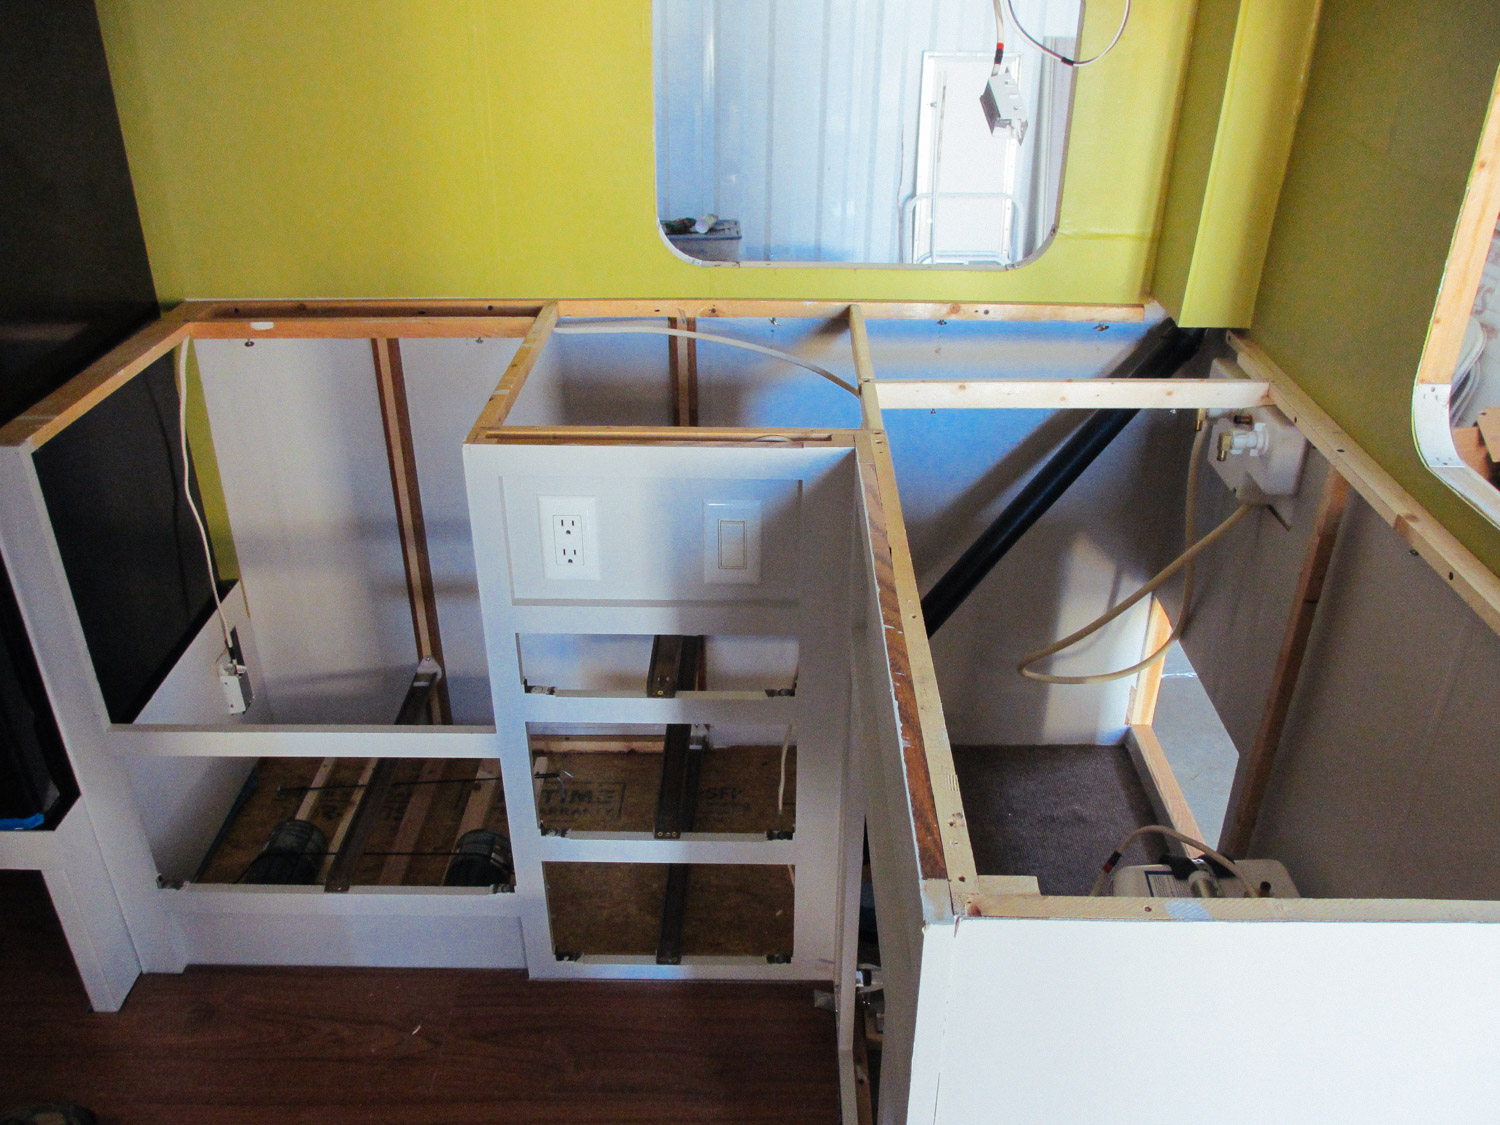 The main kitchen cabinets were reinstalled after being painted.